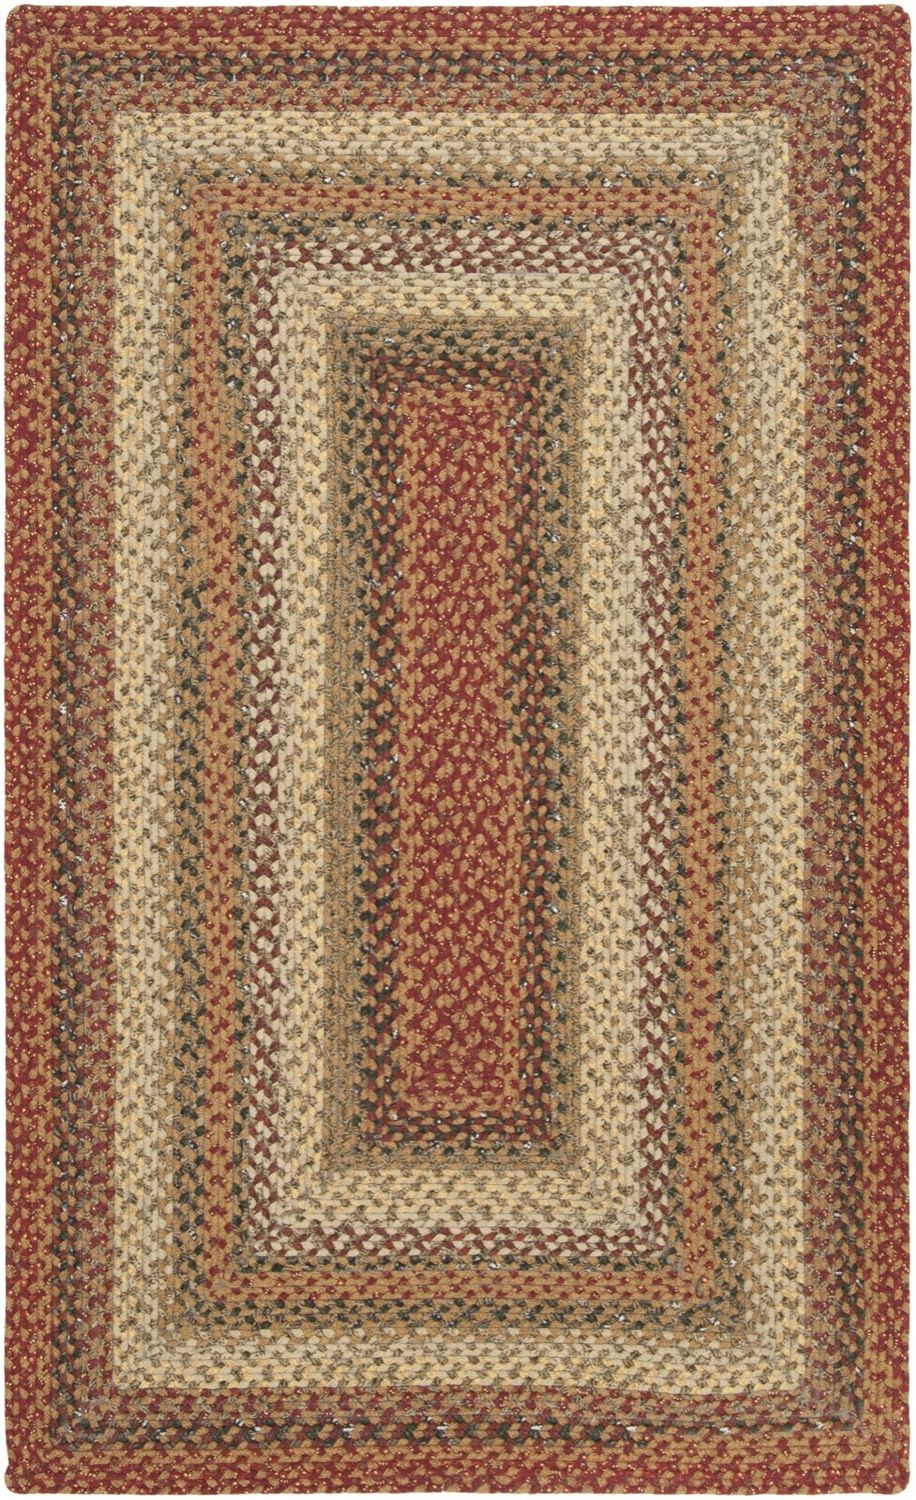 Surya Cottage Braids Braided Area Rug Collection Rugpal